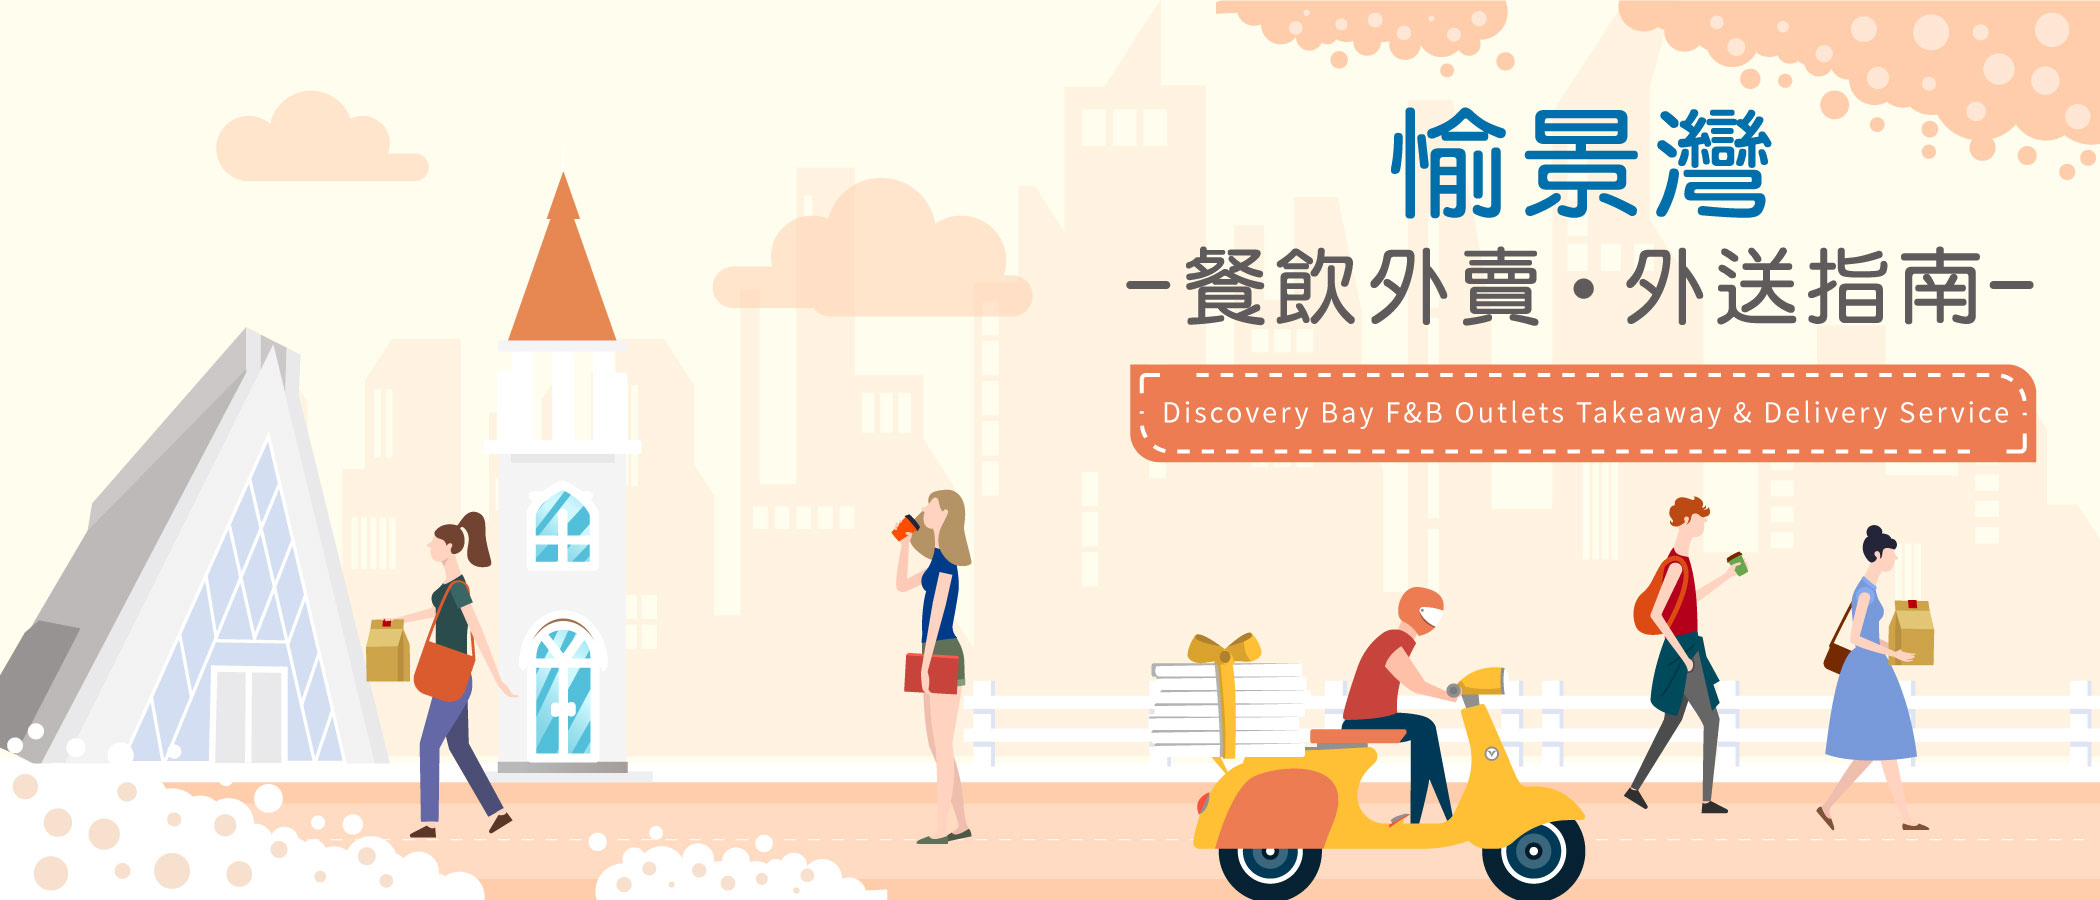 Discovery Bay F&B Outlets Takeaway & Delivery Service